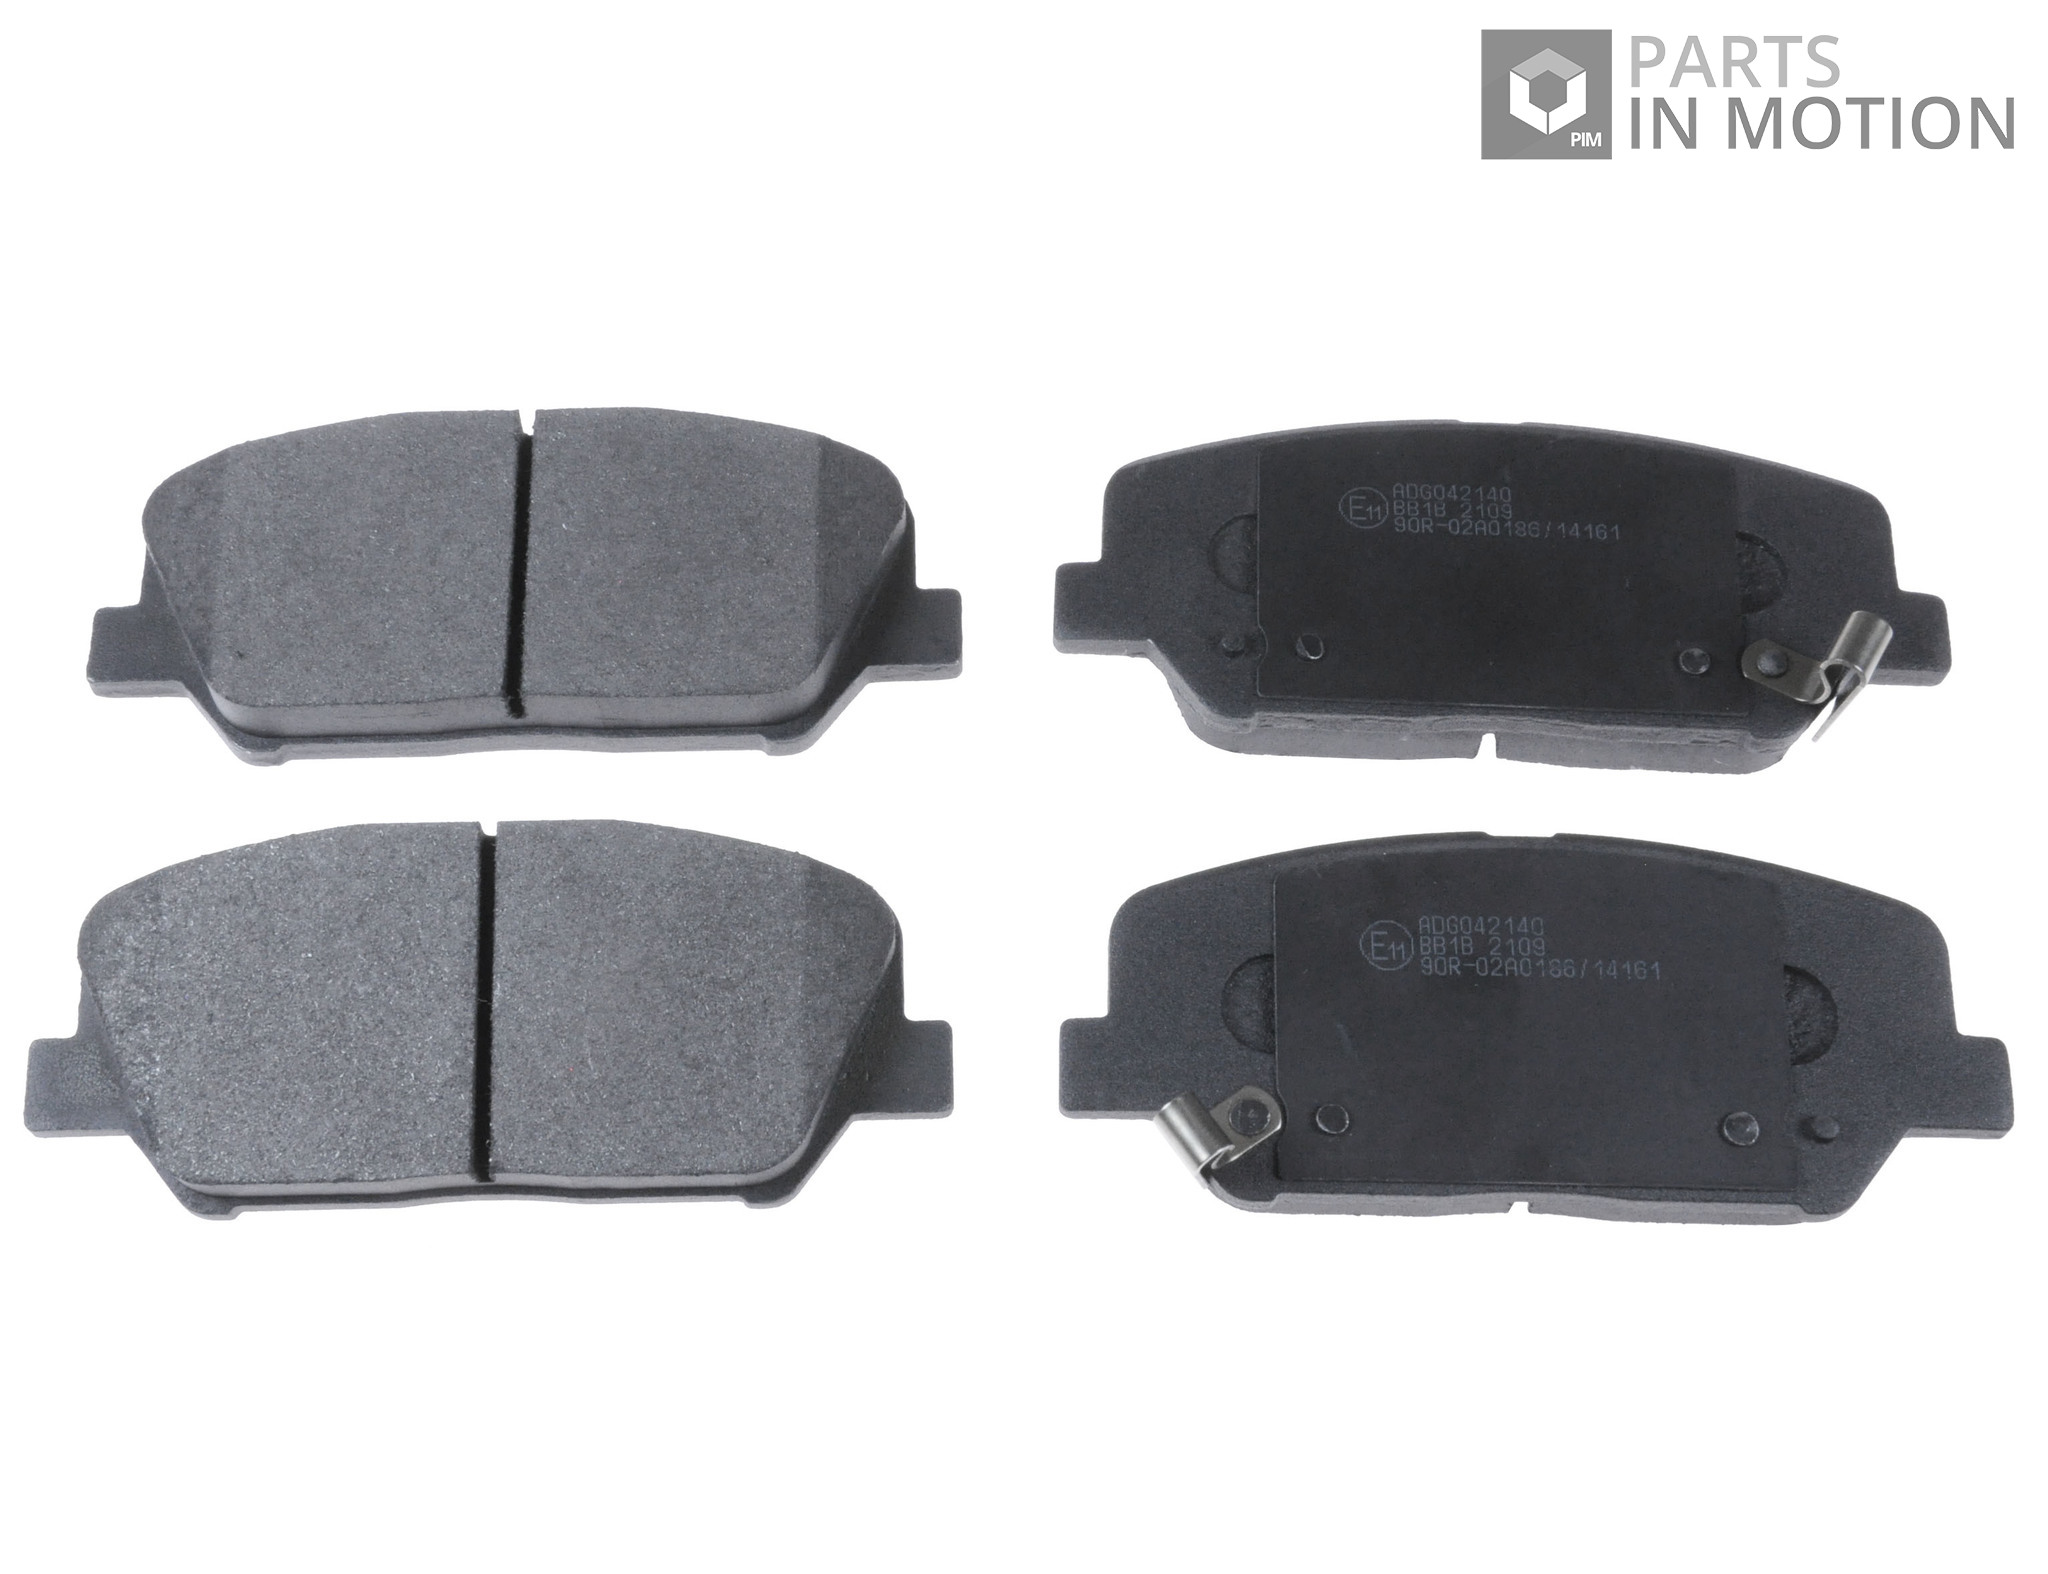 brake pads set fits kia optima 1 7d front 2012 on d4fd l. Black Bedroom Furniture Sets. Home Design Ideas